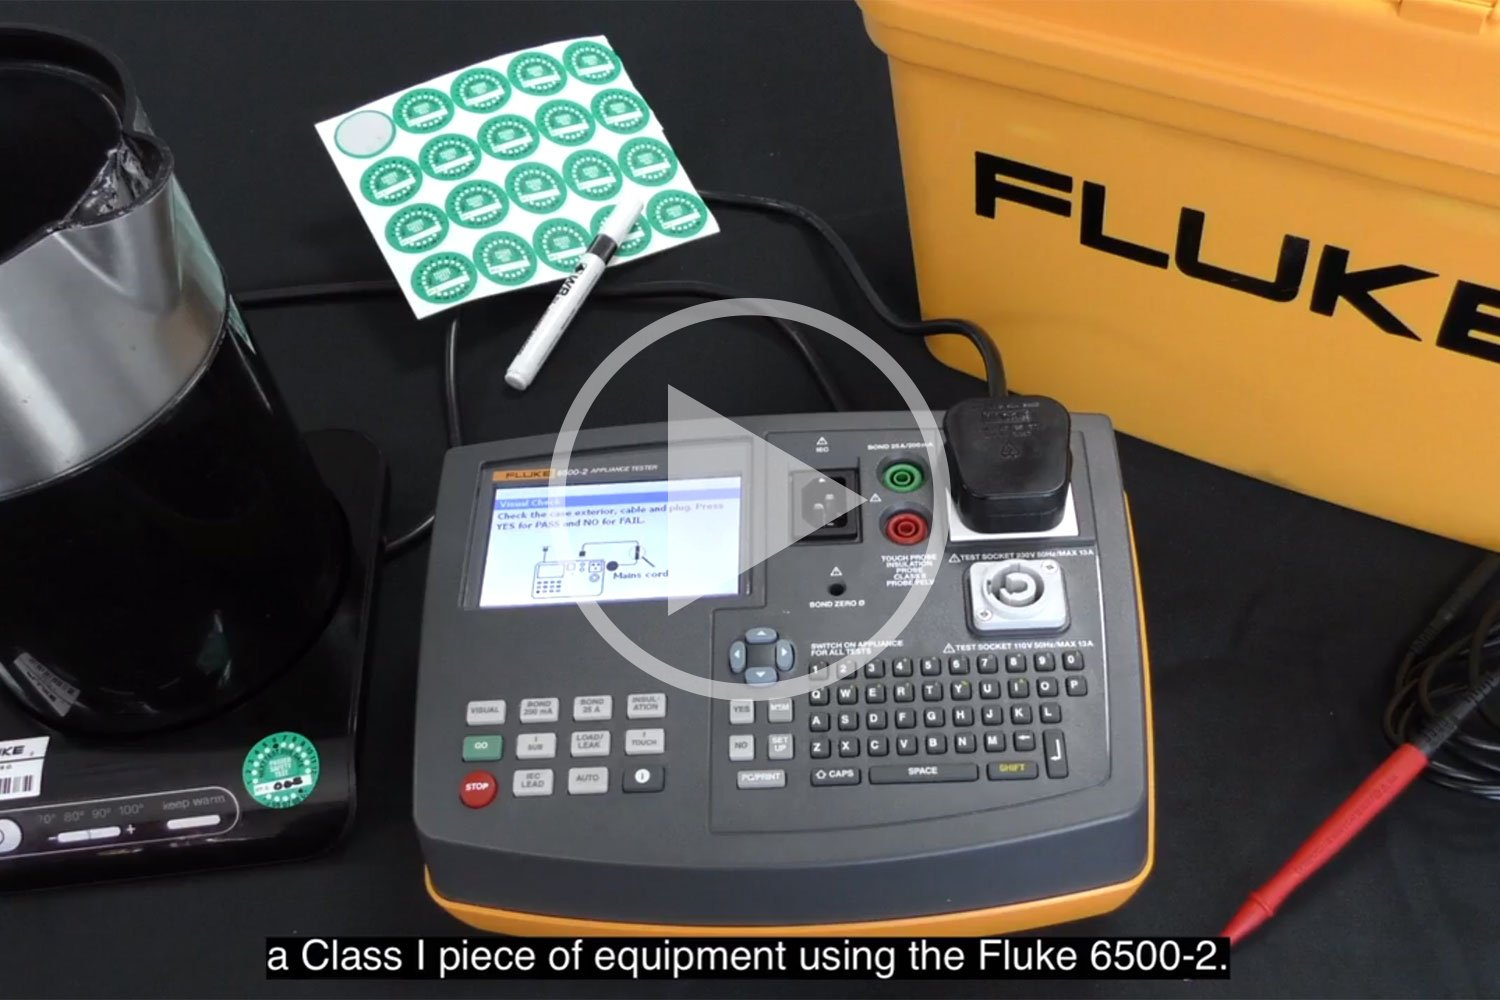 How to test a class I appliance- Fluke 6500-2 PAT Tester: